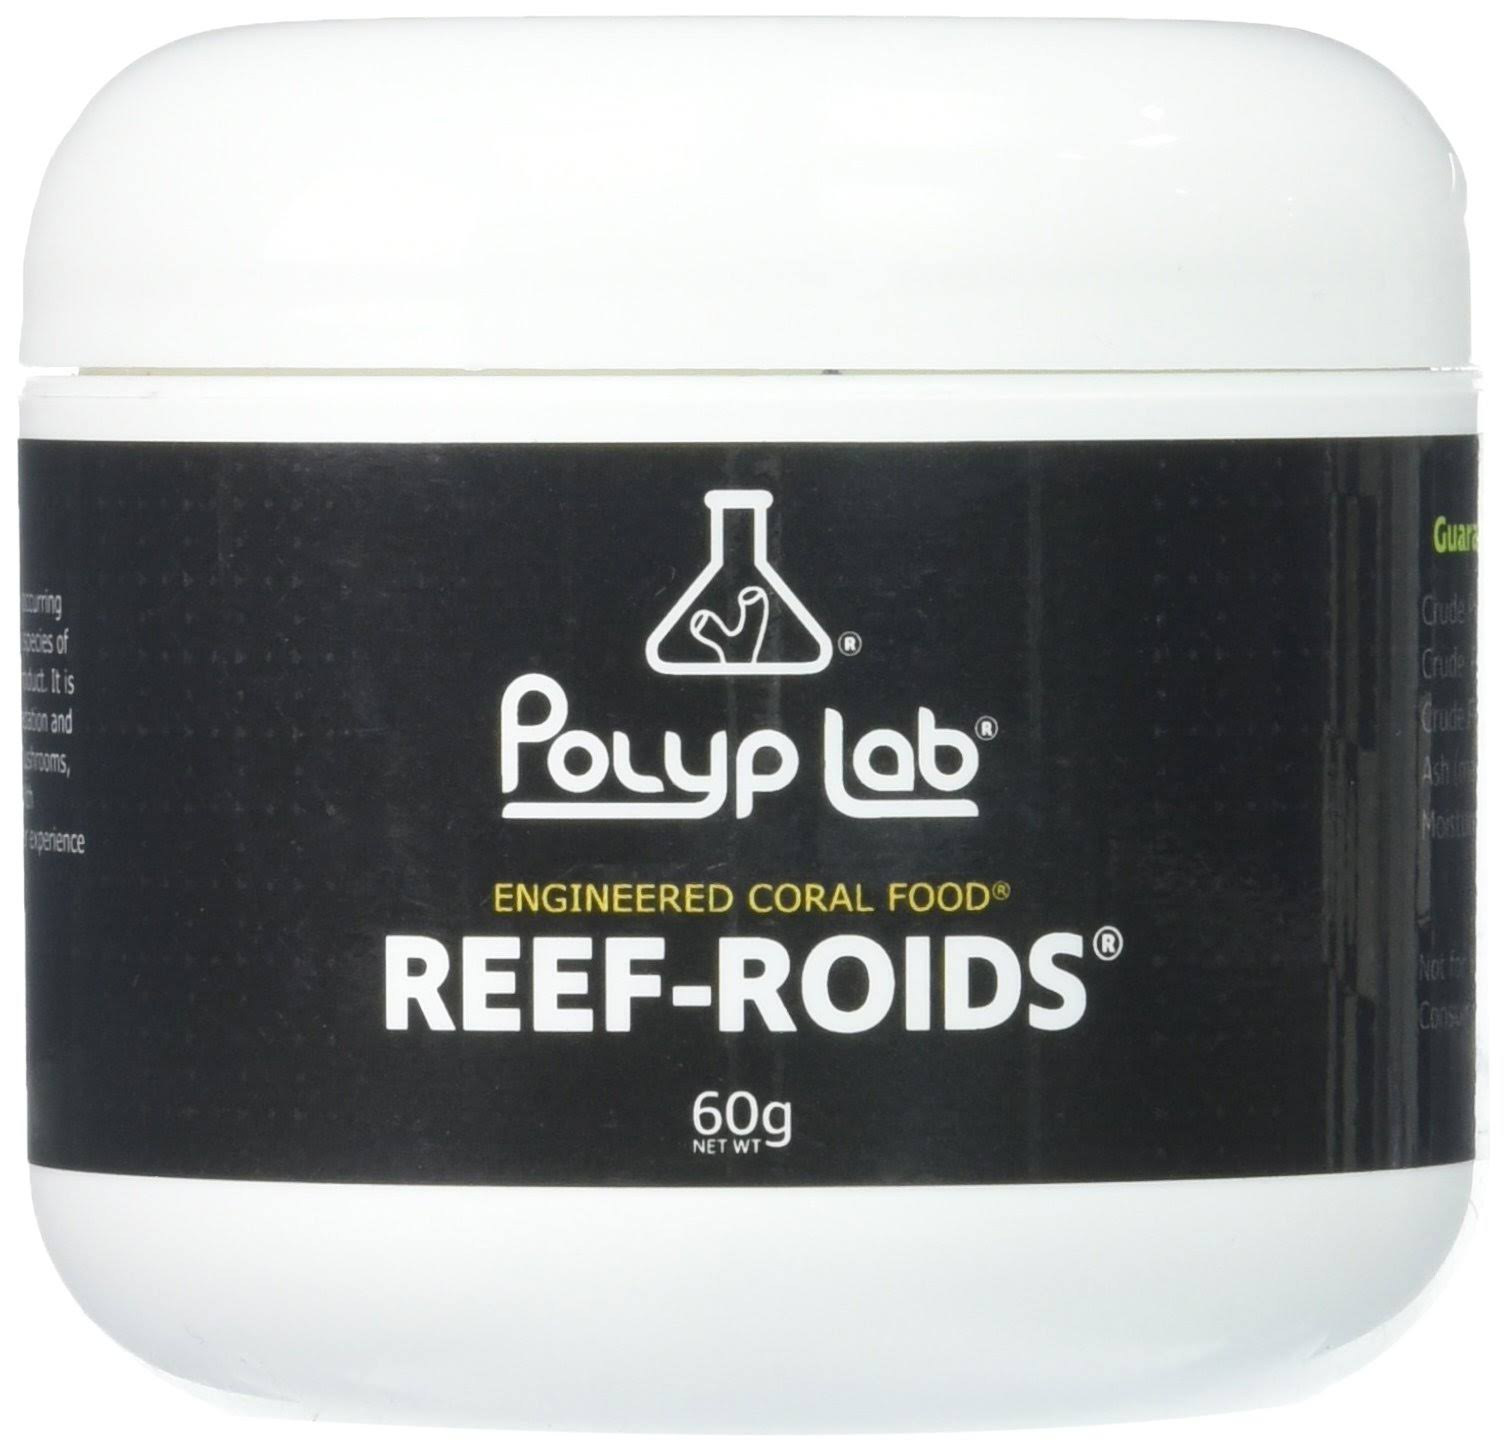 Polyp Lab Reef Roids - Coral Food